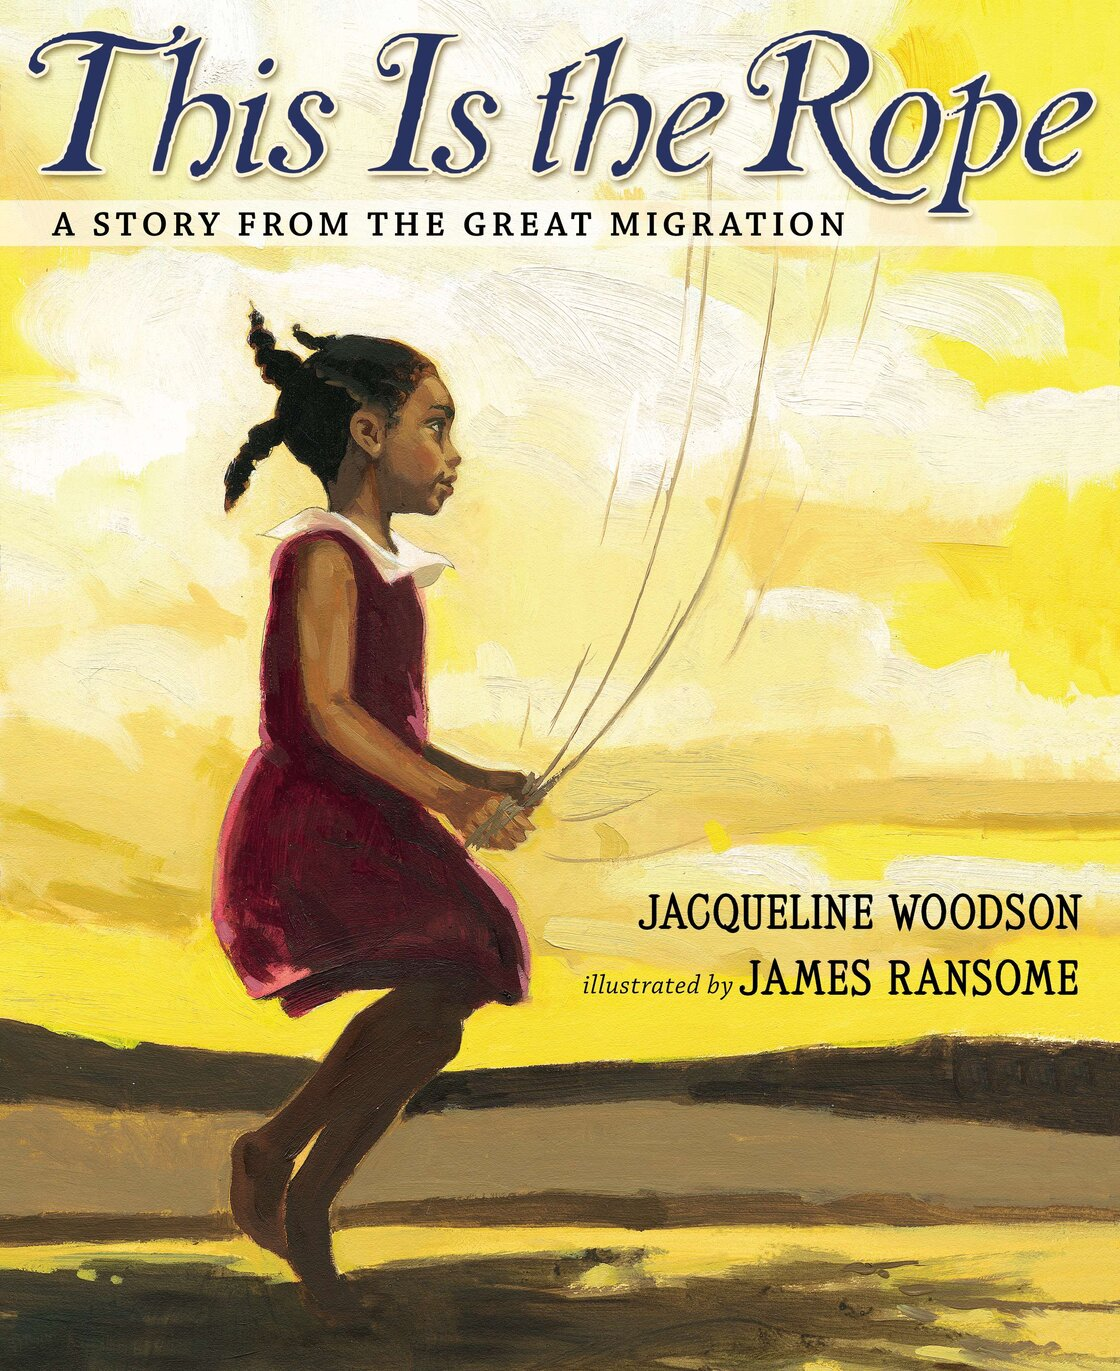 Excerpted from This Is The Rope: A Story Of The Great Migration by Jacqueline Woodson, illustrated by James Ransome. Copyright 2013 by Jacqueline Woodson and James Ransome. Excerpted by permission of Nancy Paulson Books.